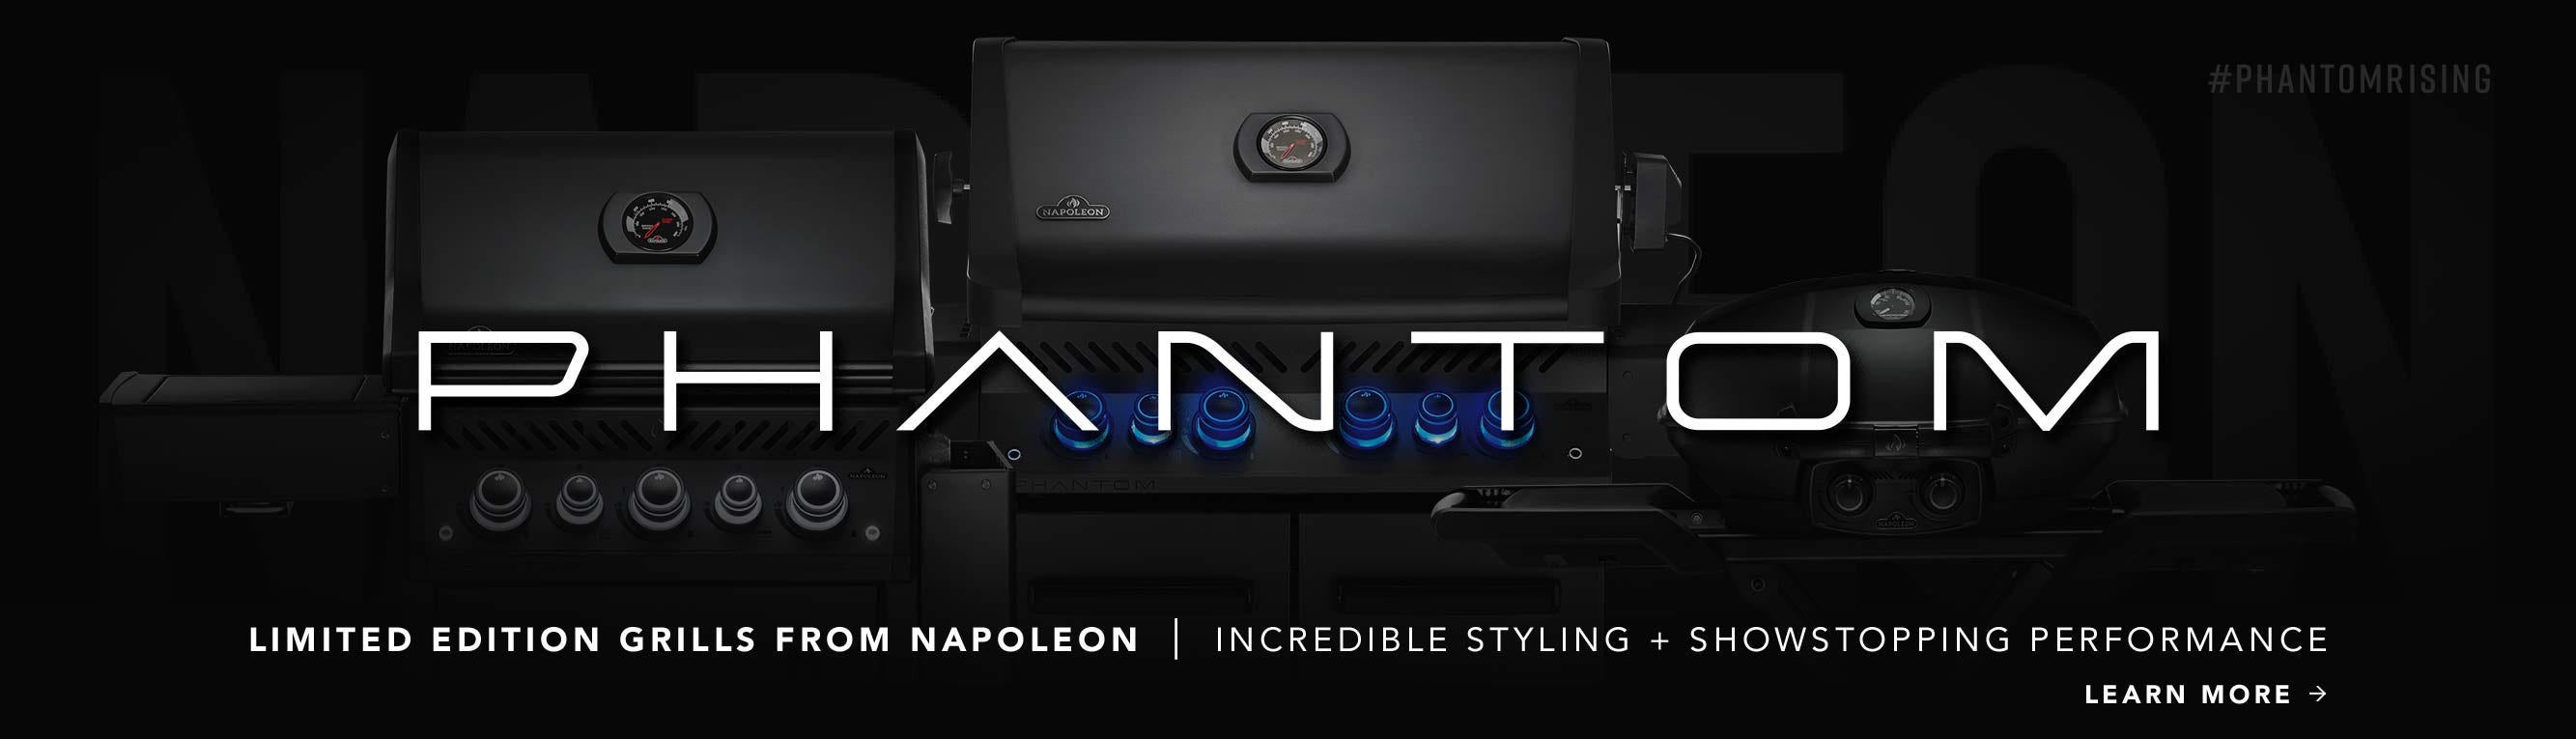 Introducing Napoleon Phantom Series Grills